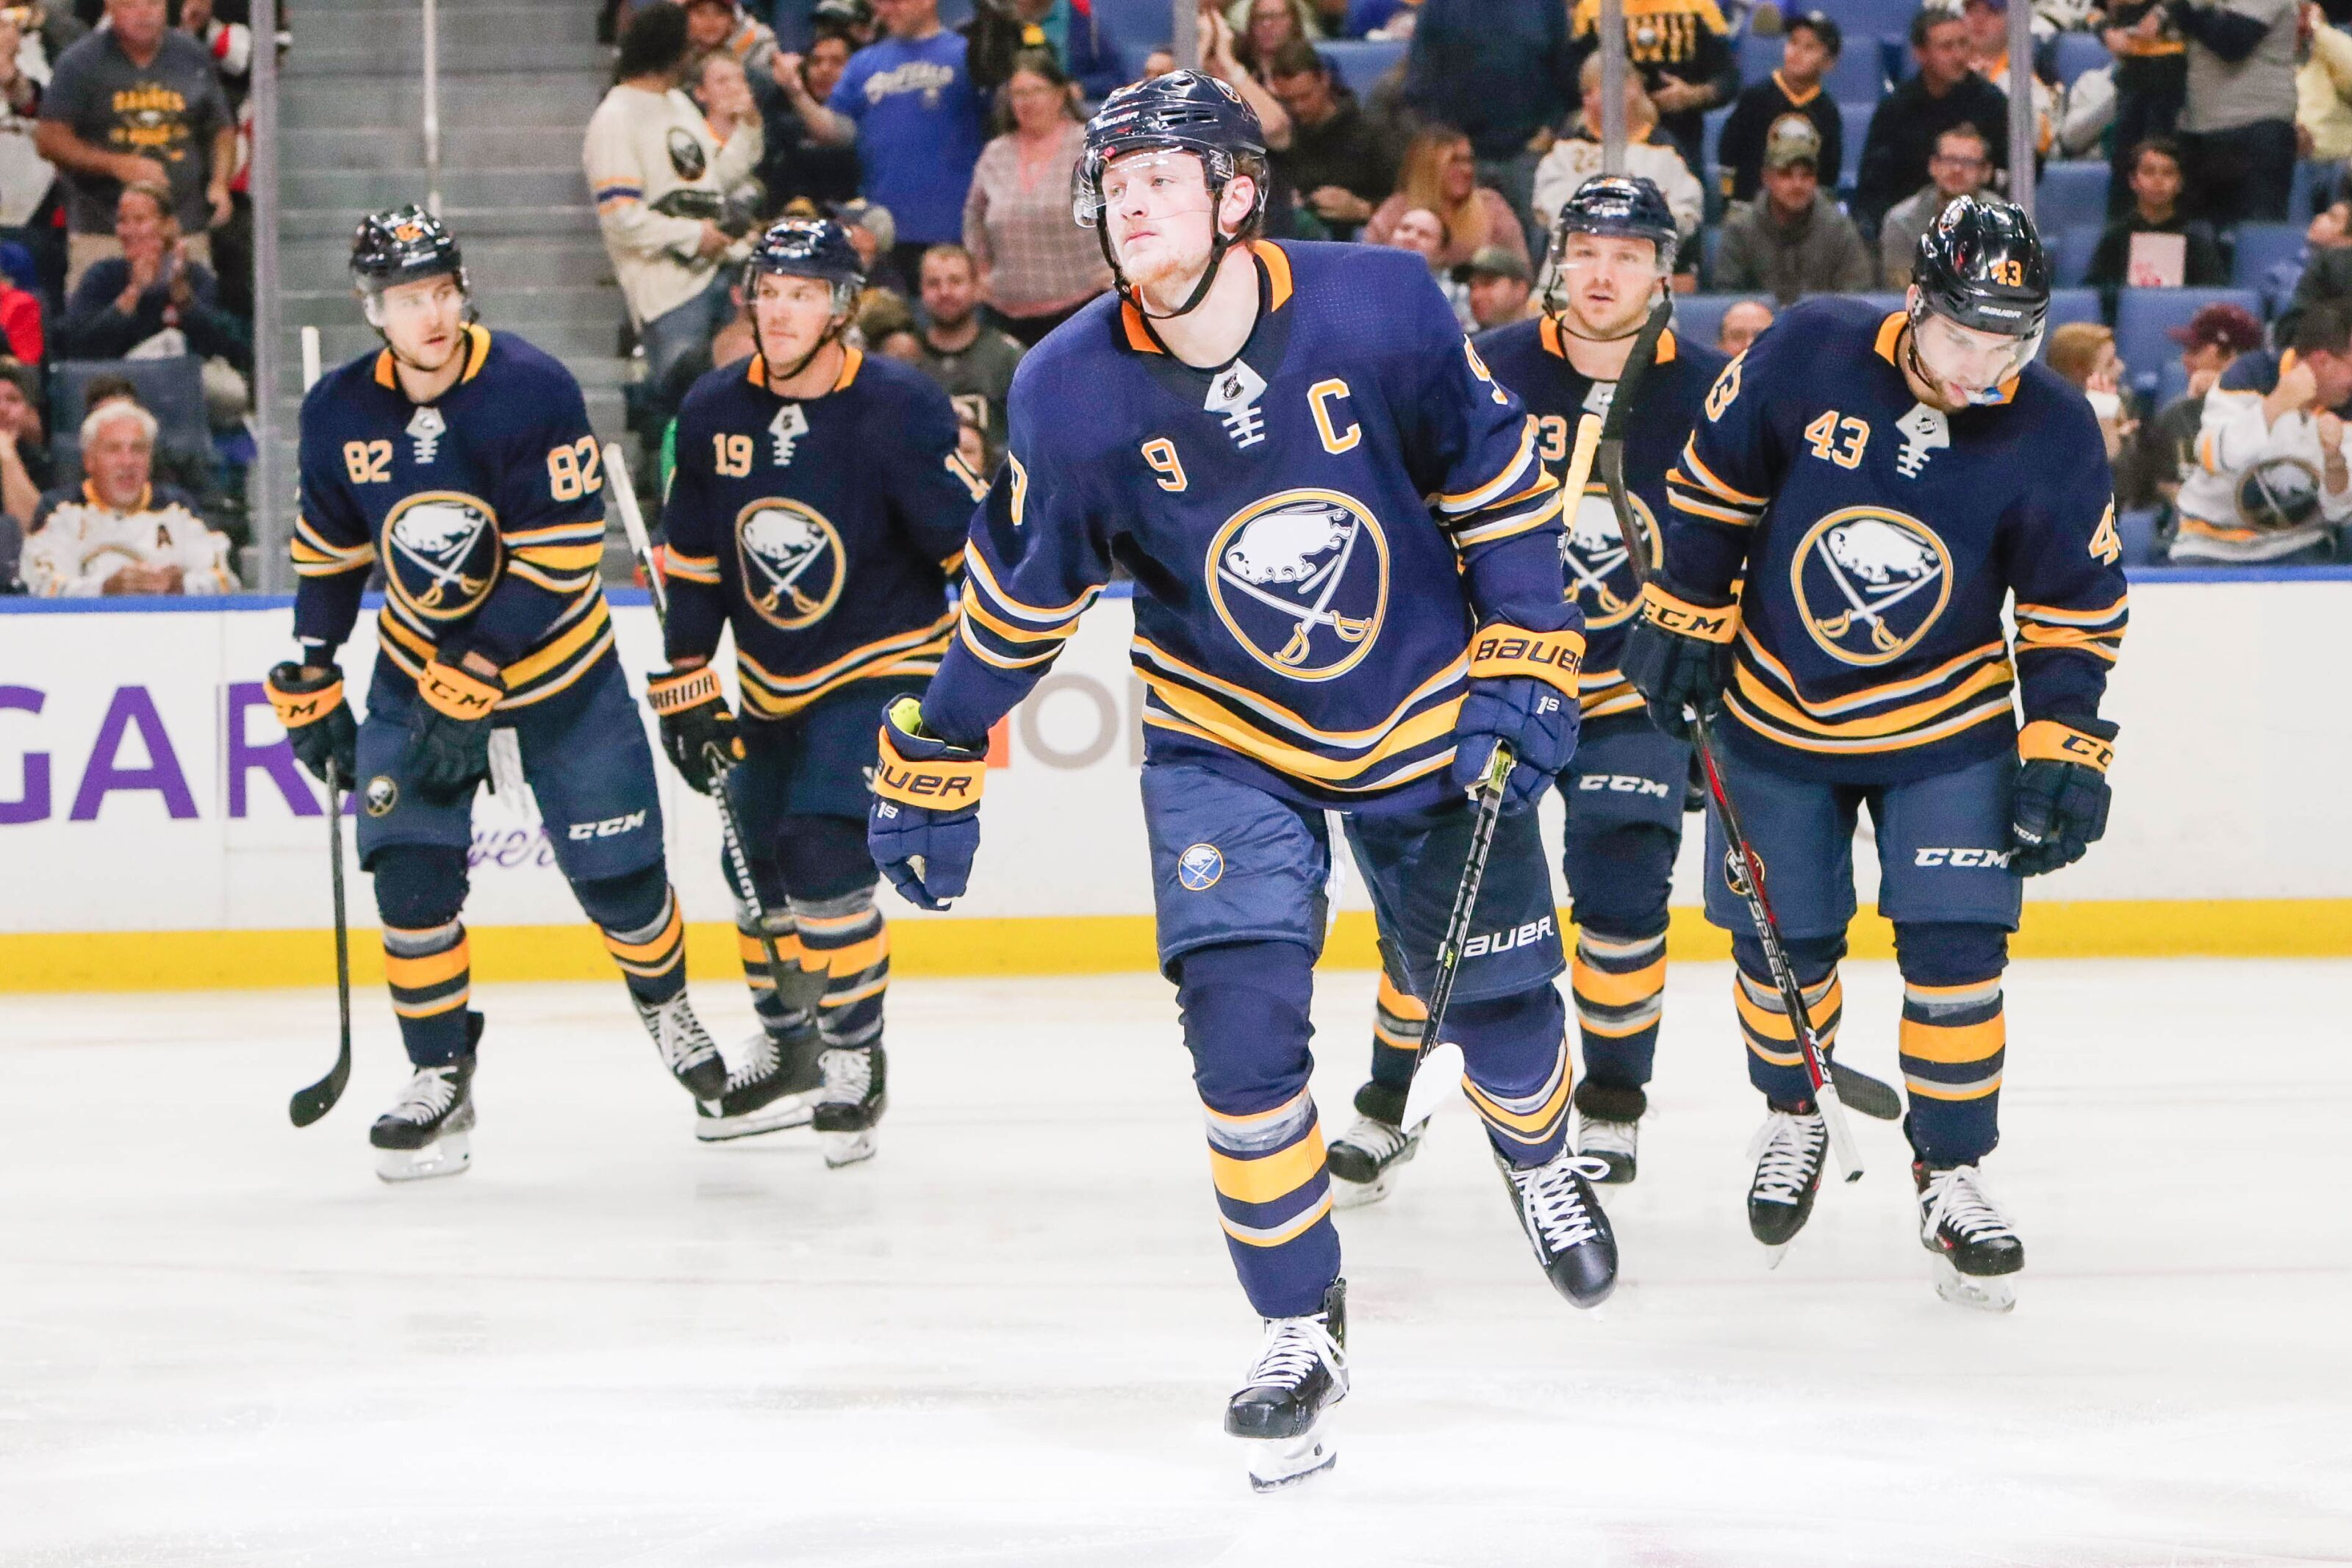 The Buffalo Sabres have a winning record for the first time in 2 8f752d28dd